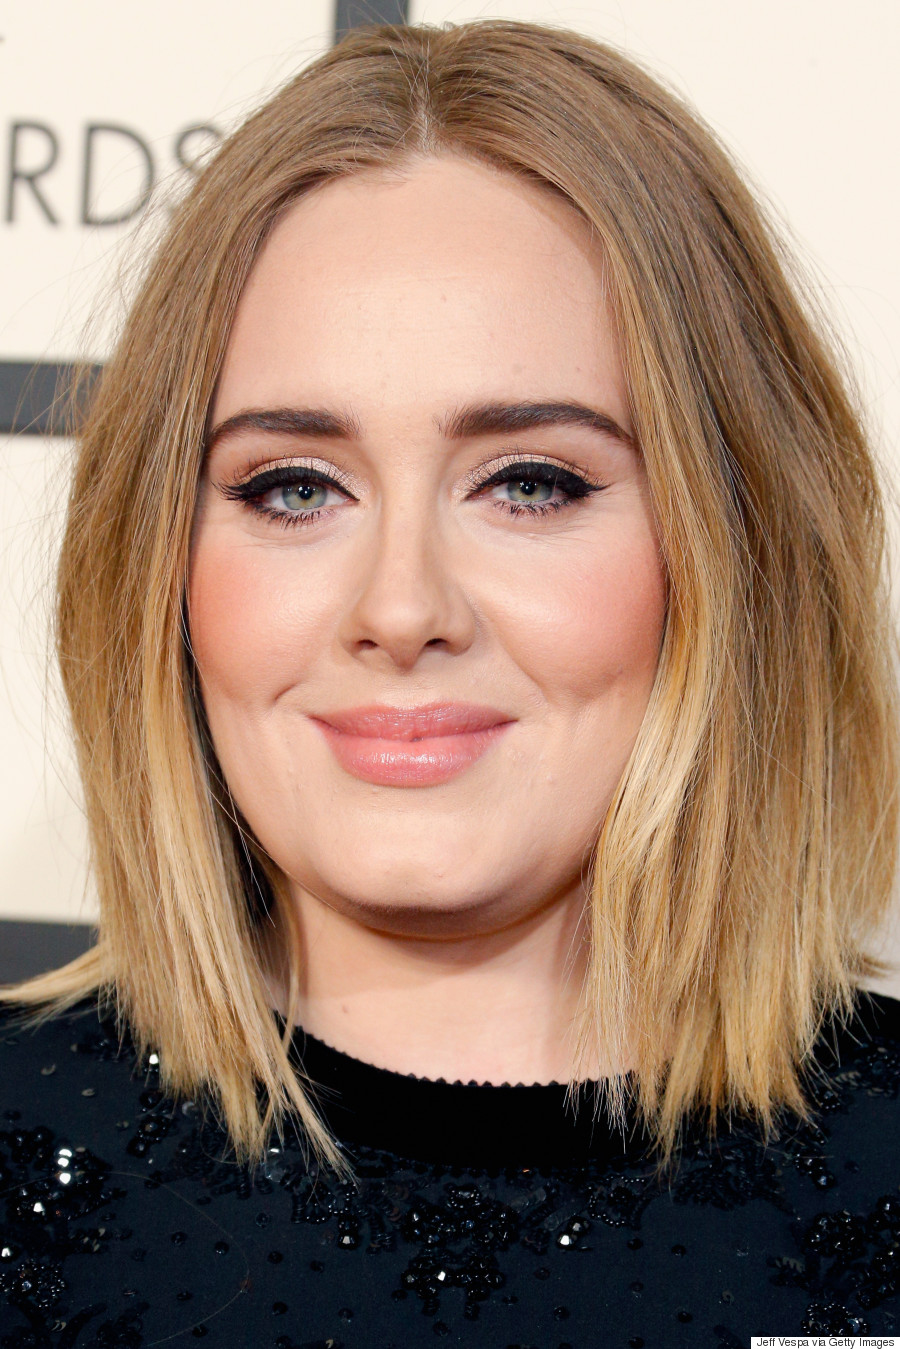 Adele Haircut 2015 | POPSUGAR Beauty